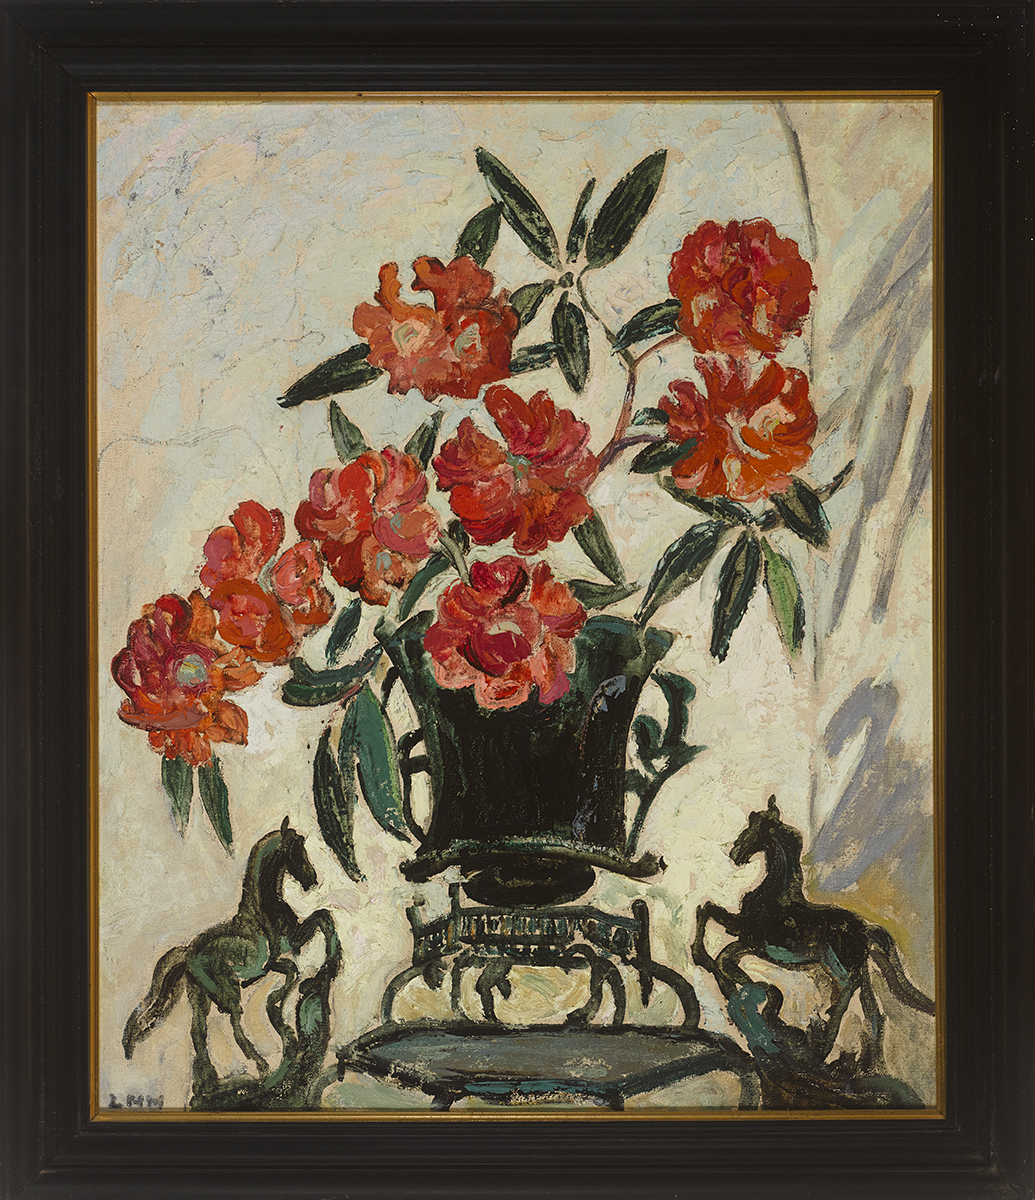 Lot 45 - Letitia Marion Hamilton RHA (1878-1964)STILL LIFE WITH FLOWERS oil on canvas signed lower left; with